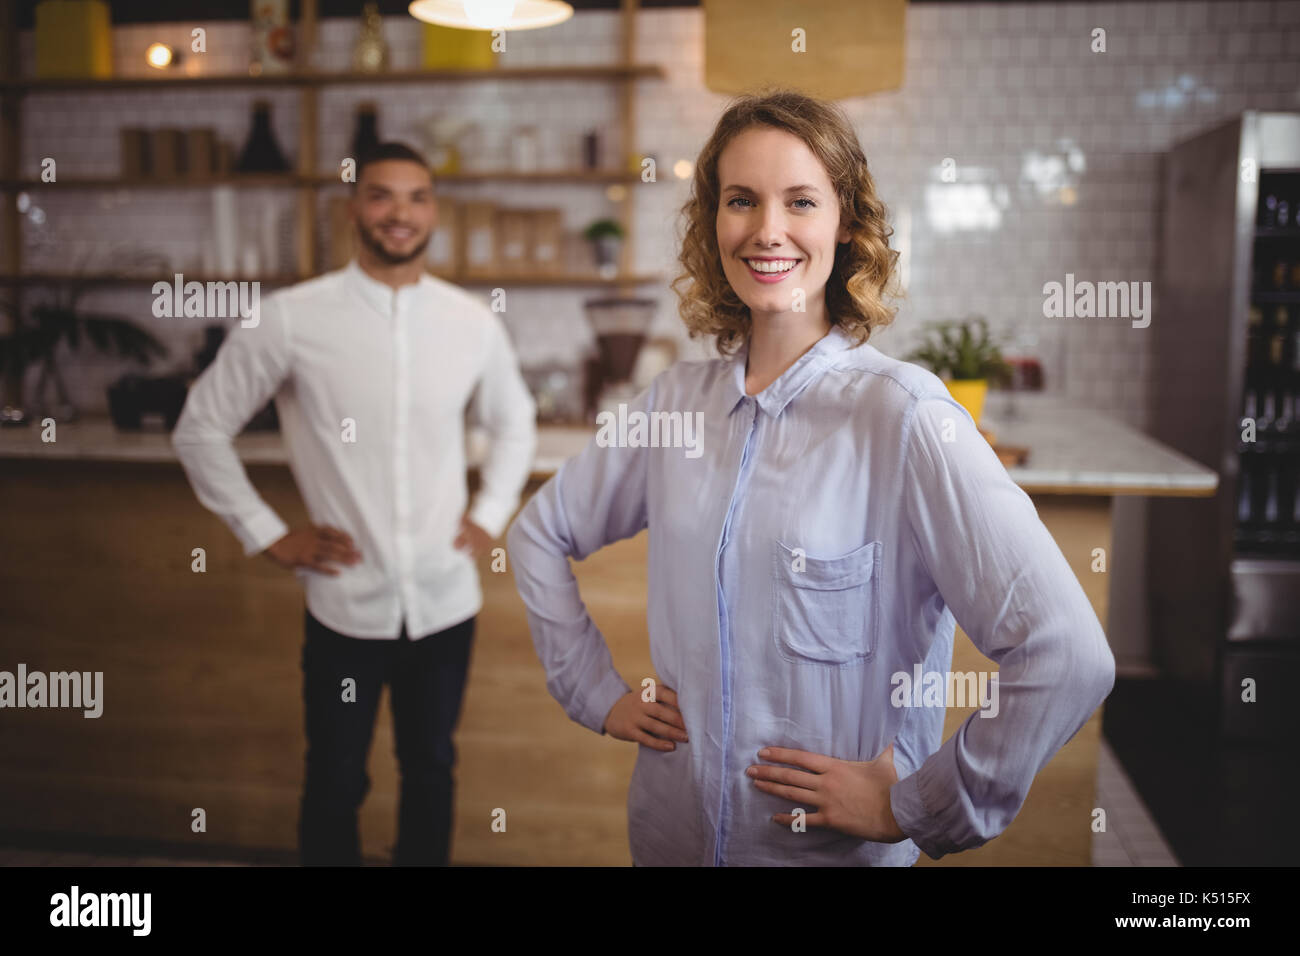 Portrait of smiling young woman with hand on hip against friend standing at coffee shop - Stock Image